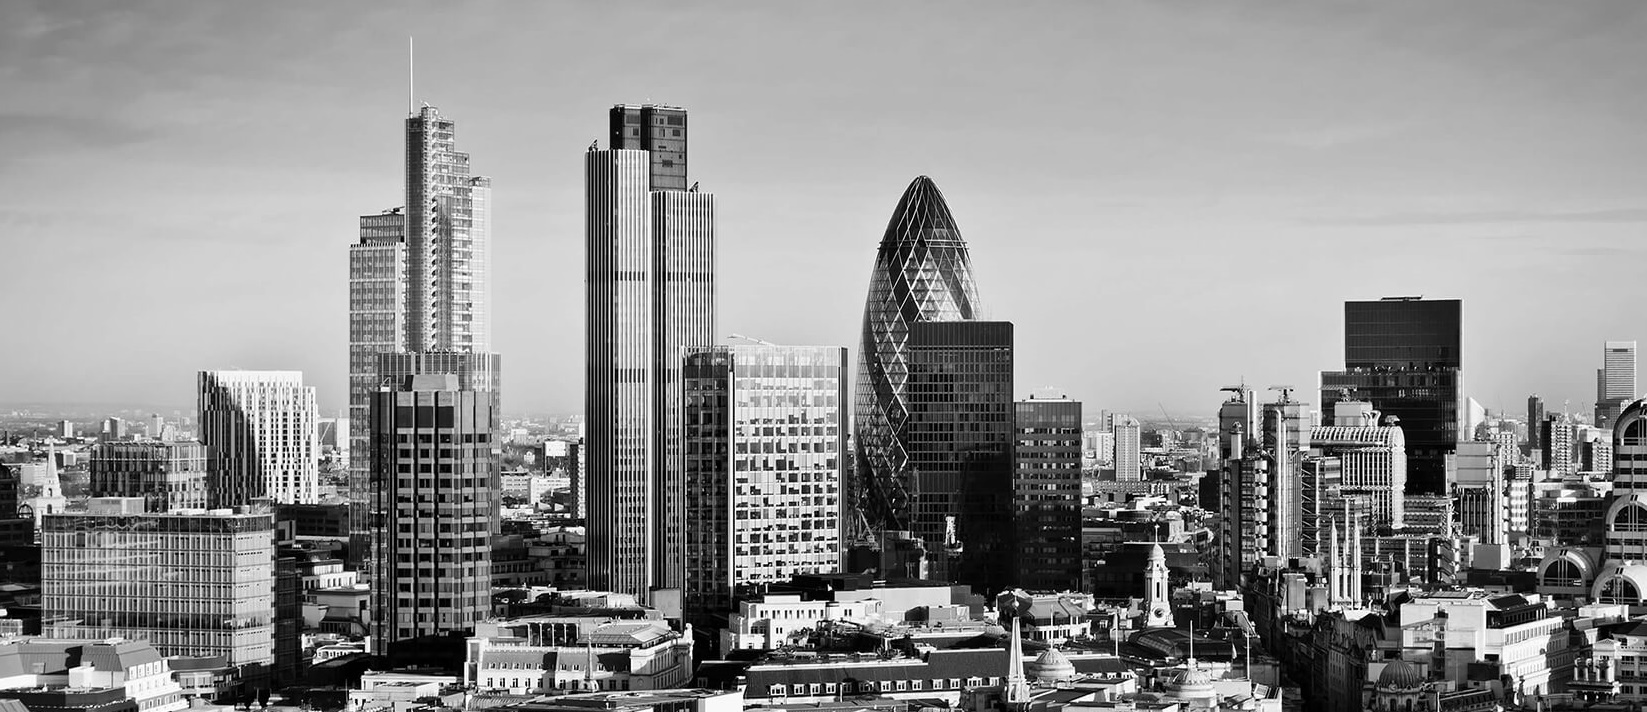 Breakfast Briefings on European Real Estate Investments - 13 November 2019, London